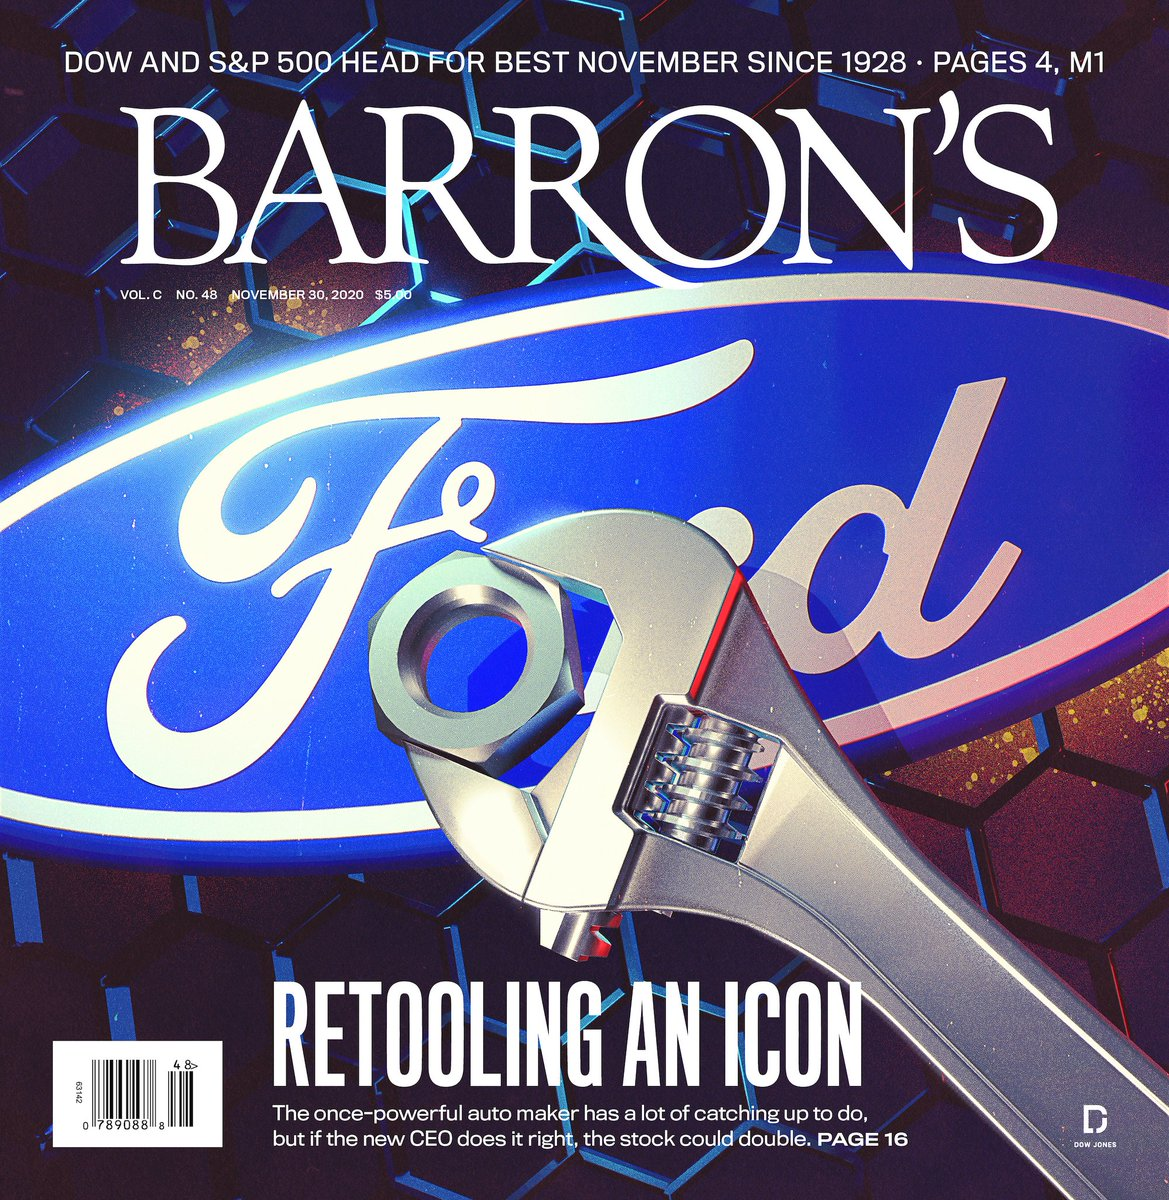 Fords new CEO faces formidable challenges—but the legacy auto makers shares could soar if he succeeds in leading it into an electric future. Learn why Ford stock can double in this weeks issue of Barrons. on.barrons.com/2Vd1n1g